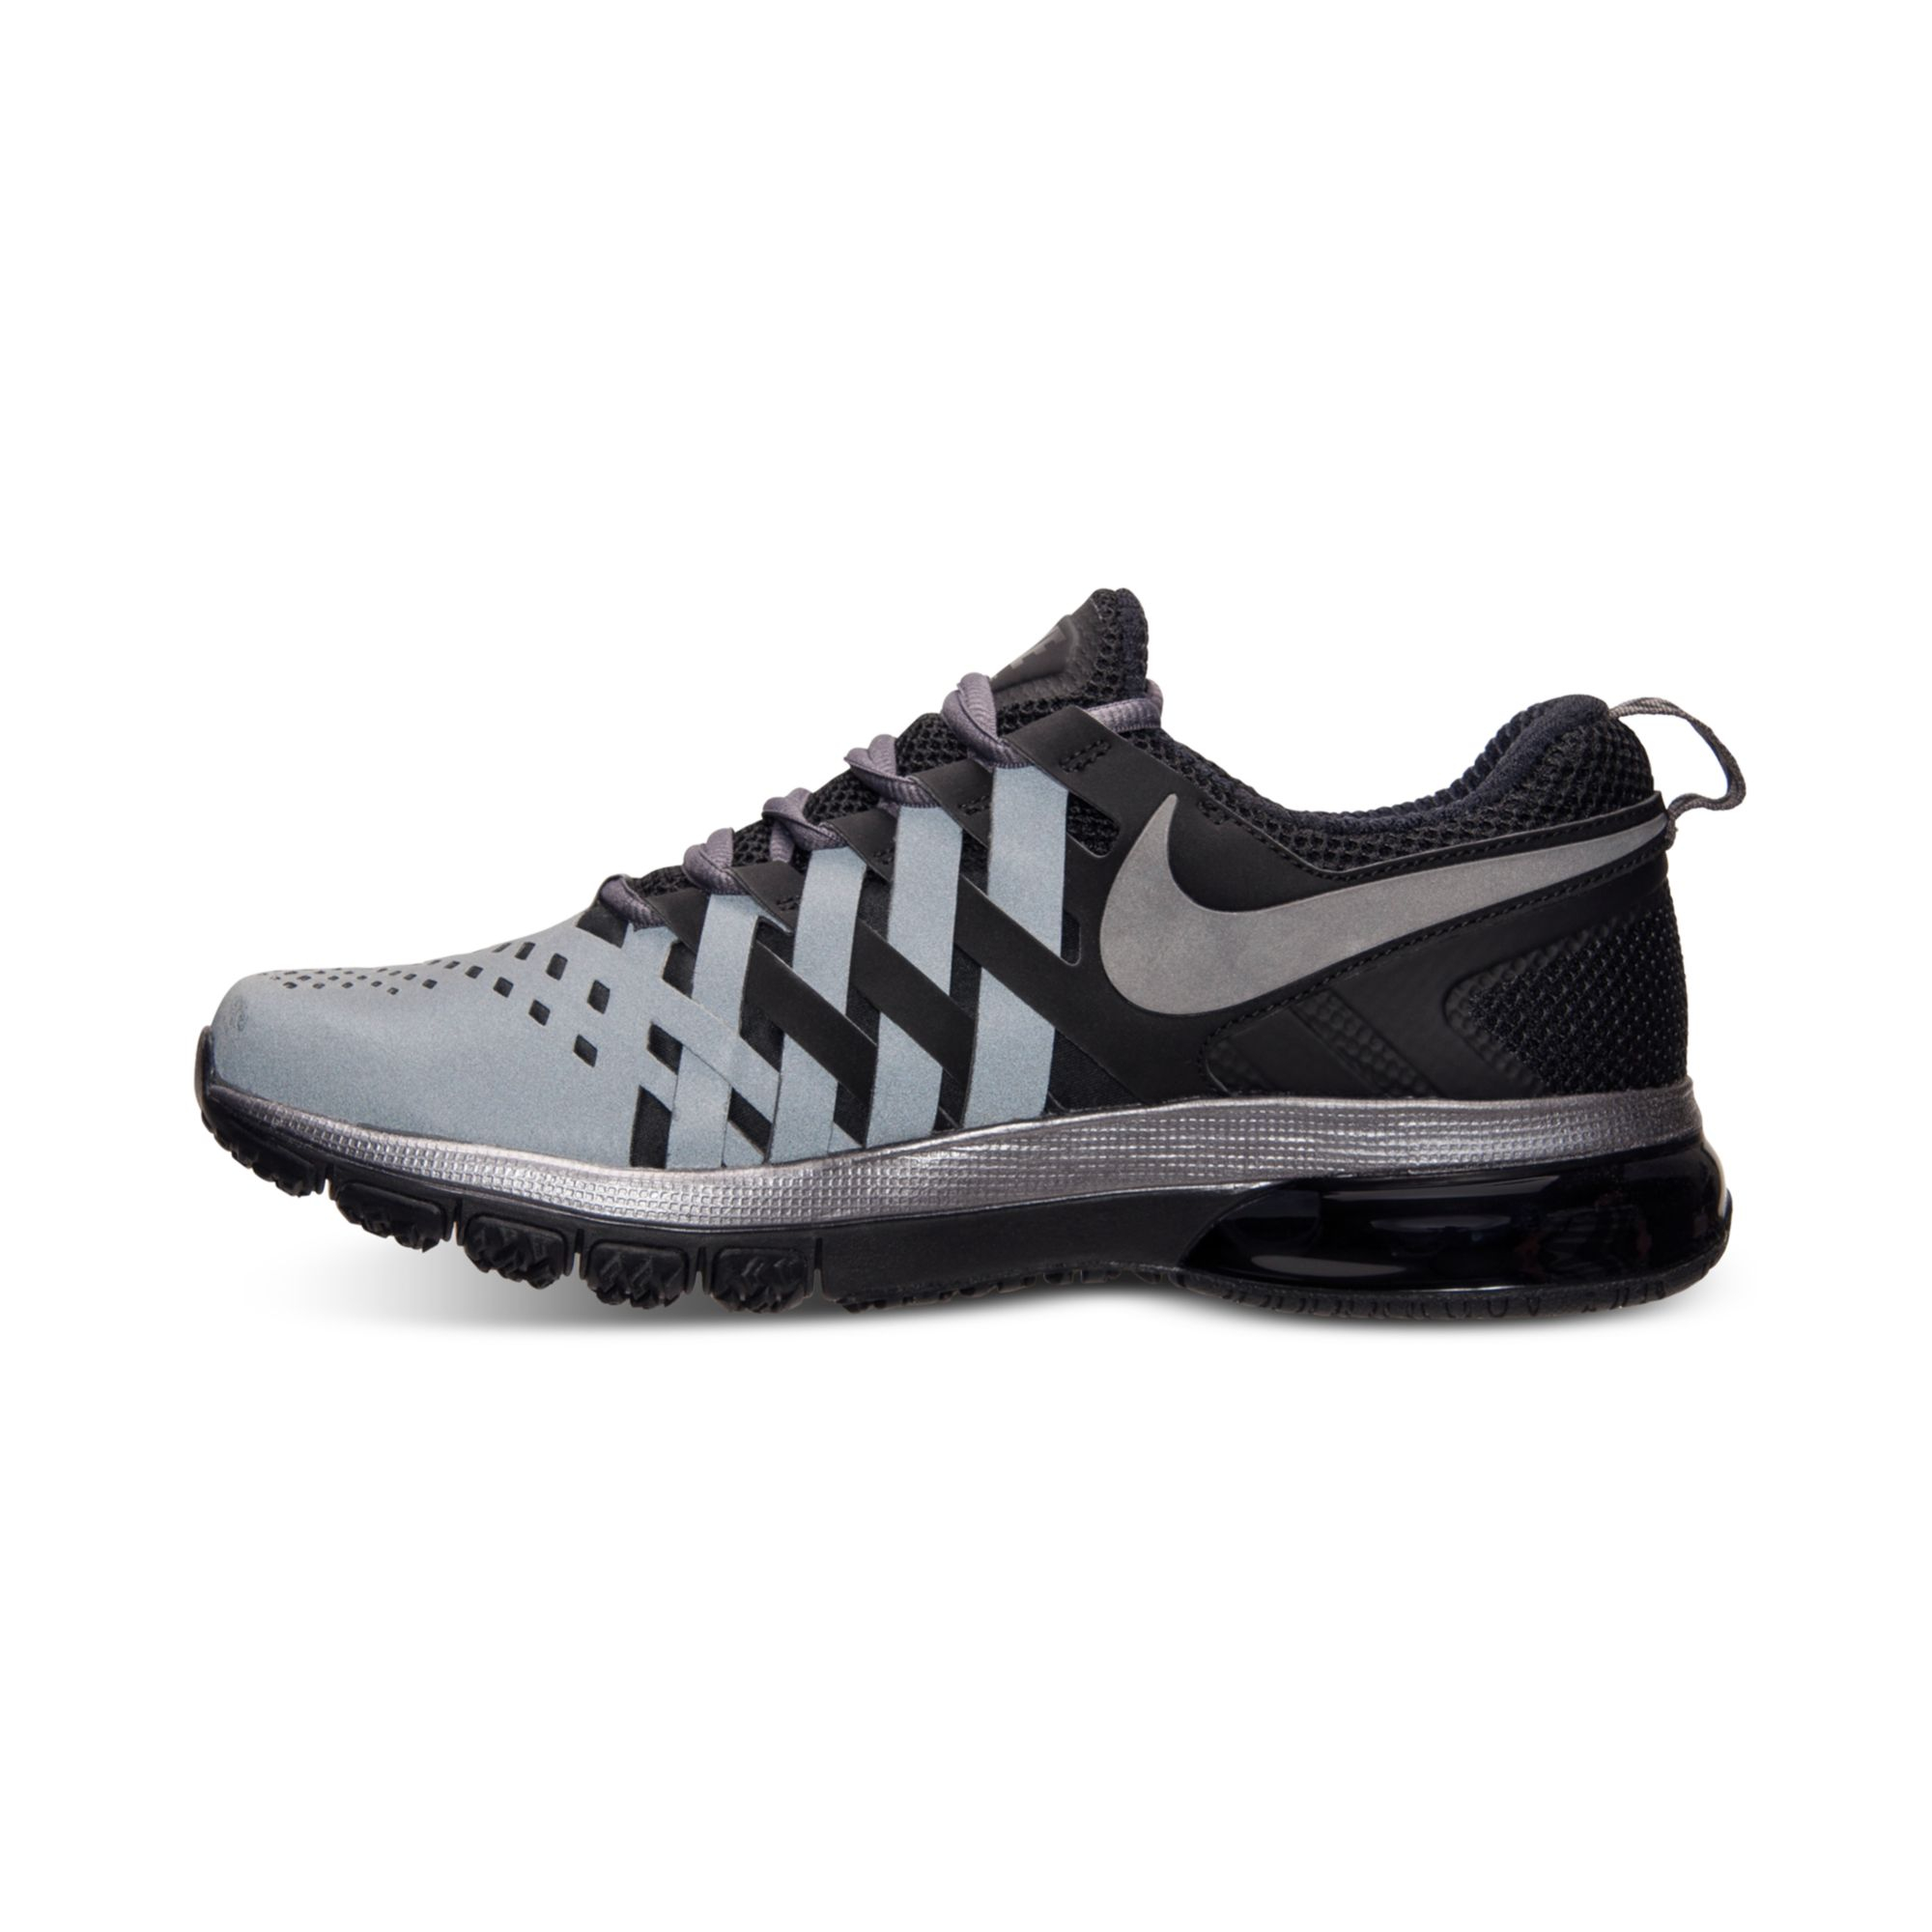 nike mens fingertrap air max training sneakers from finish. Black Bedroom Furniture Sets. Home Design Ideas